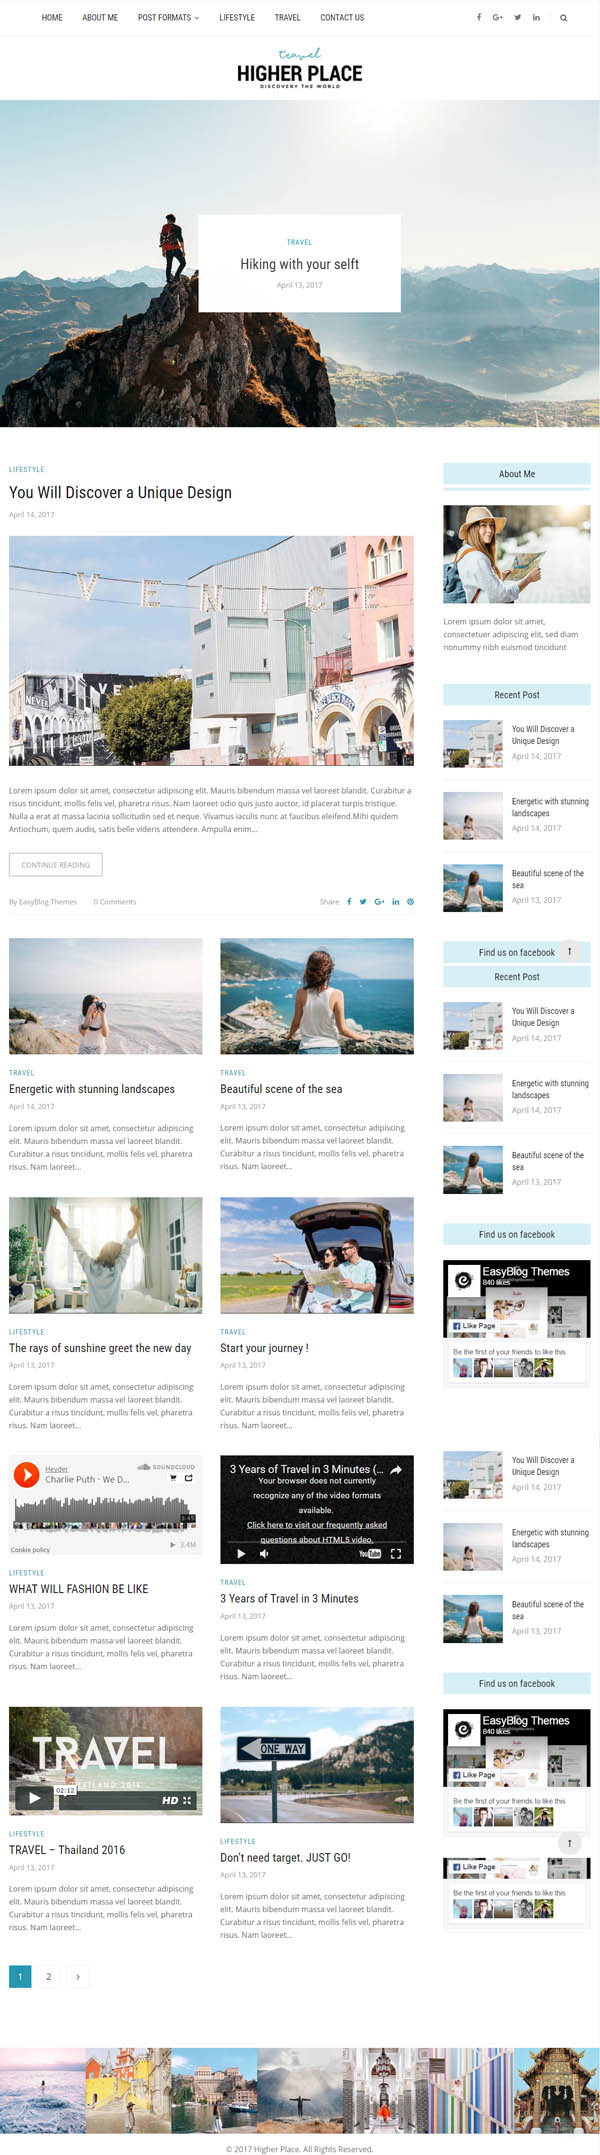 Higher Place - Multi-Purpose Blog & Magazine WordPress Theme